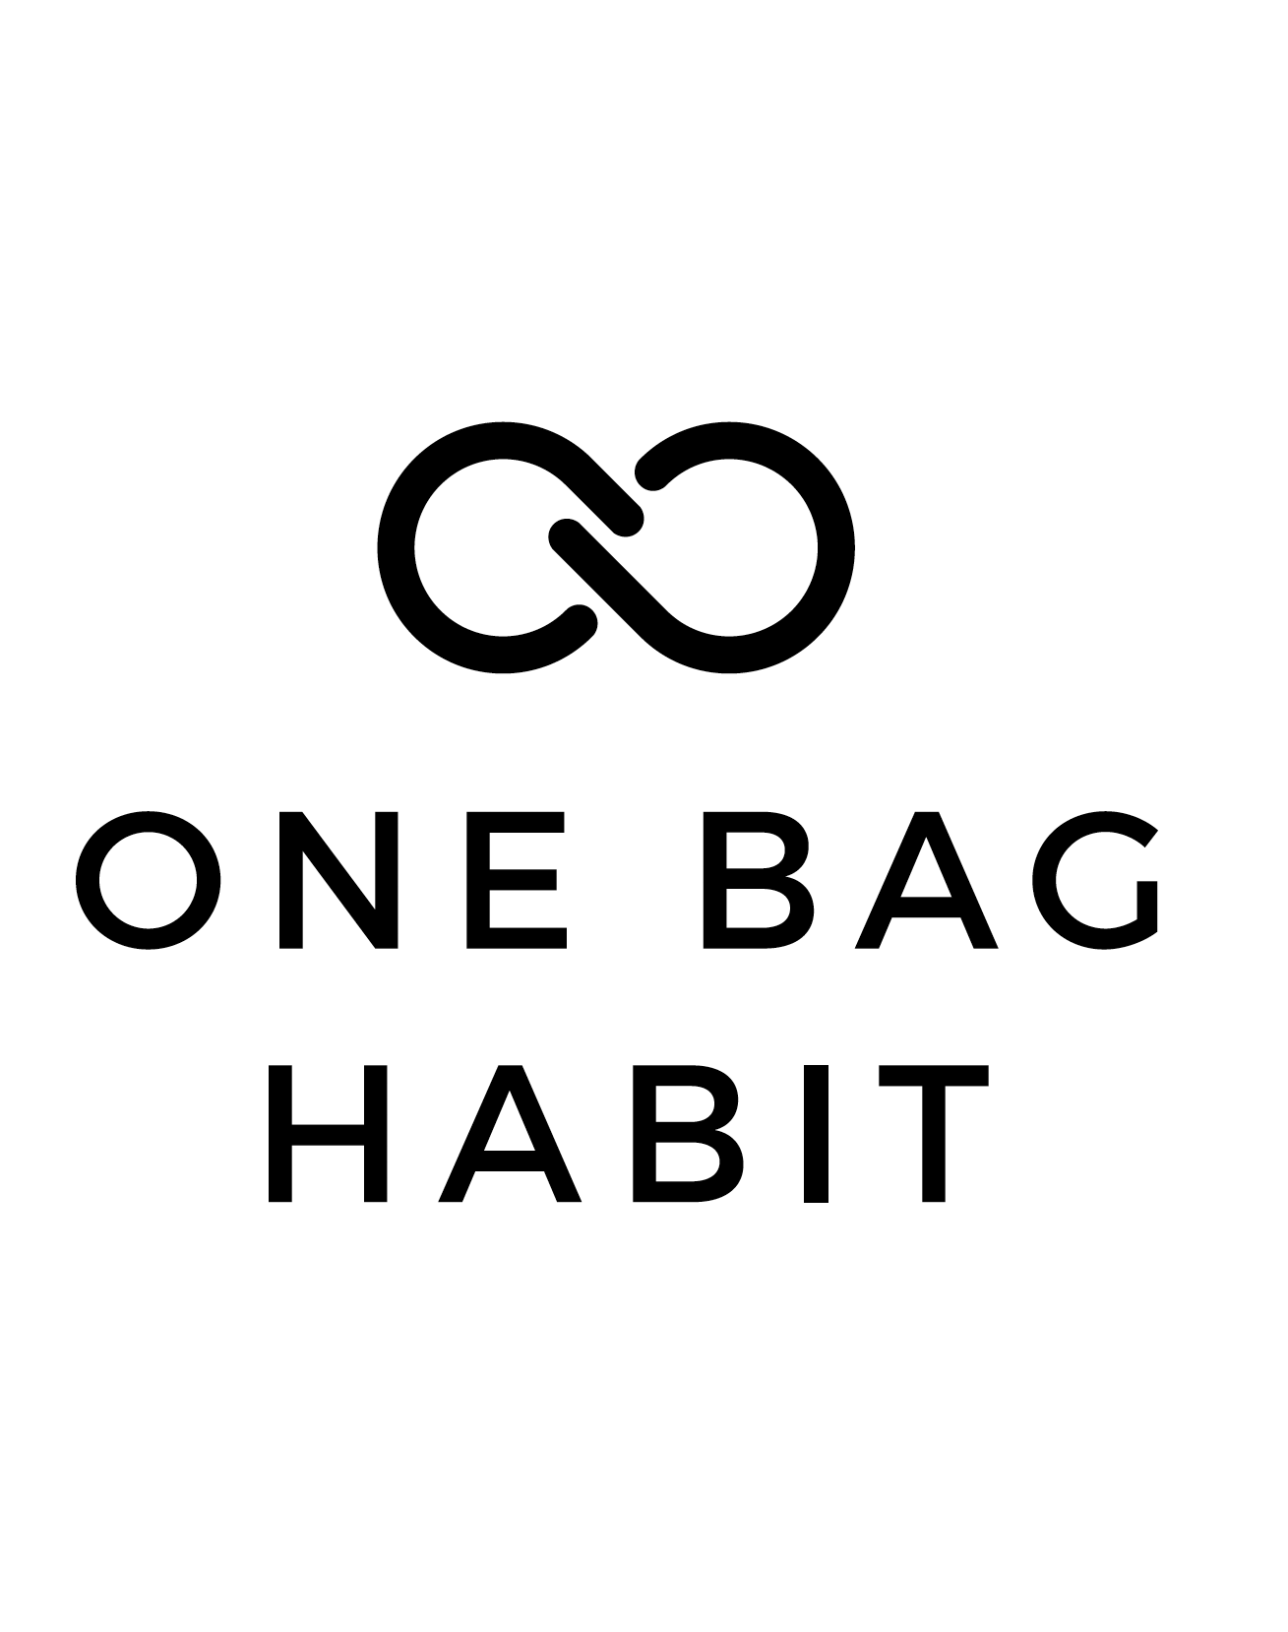 One Bag Habit